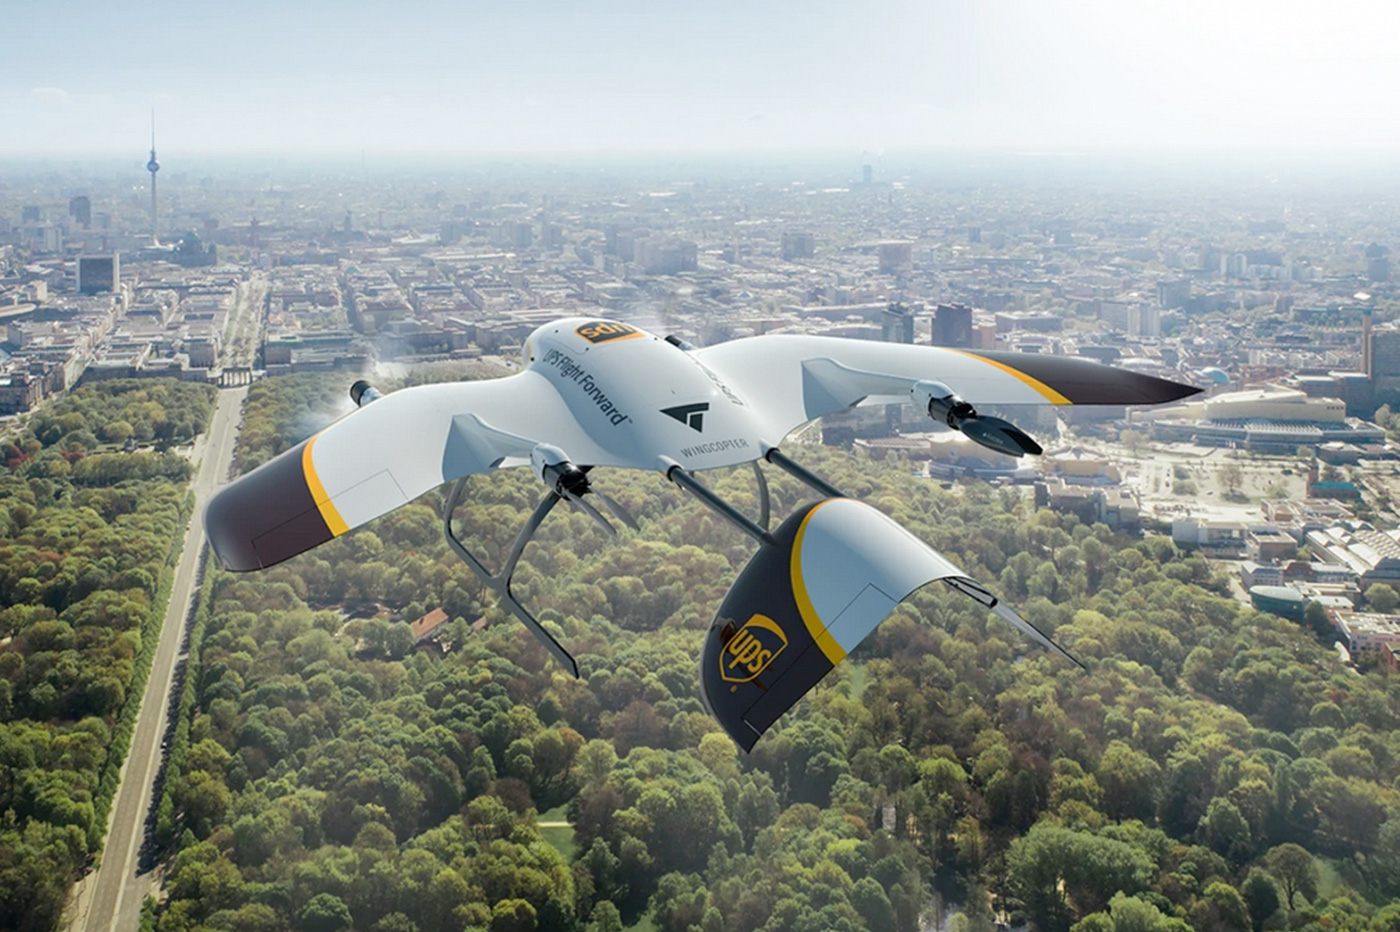 UPS Wingcopter